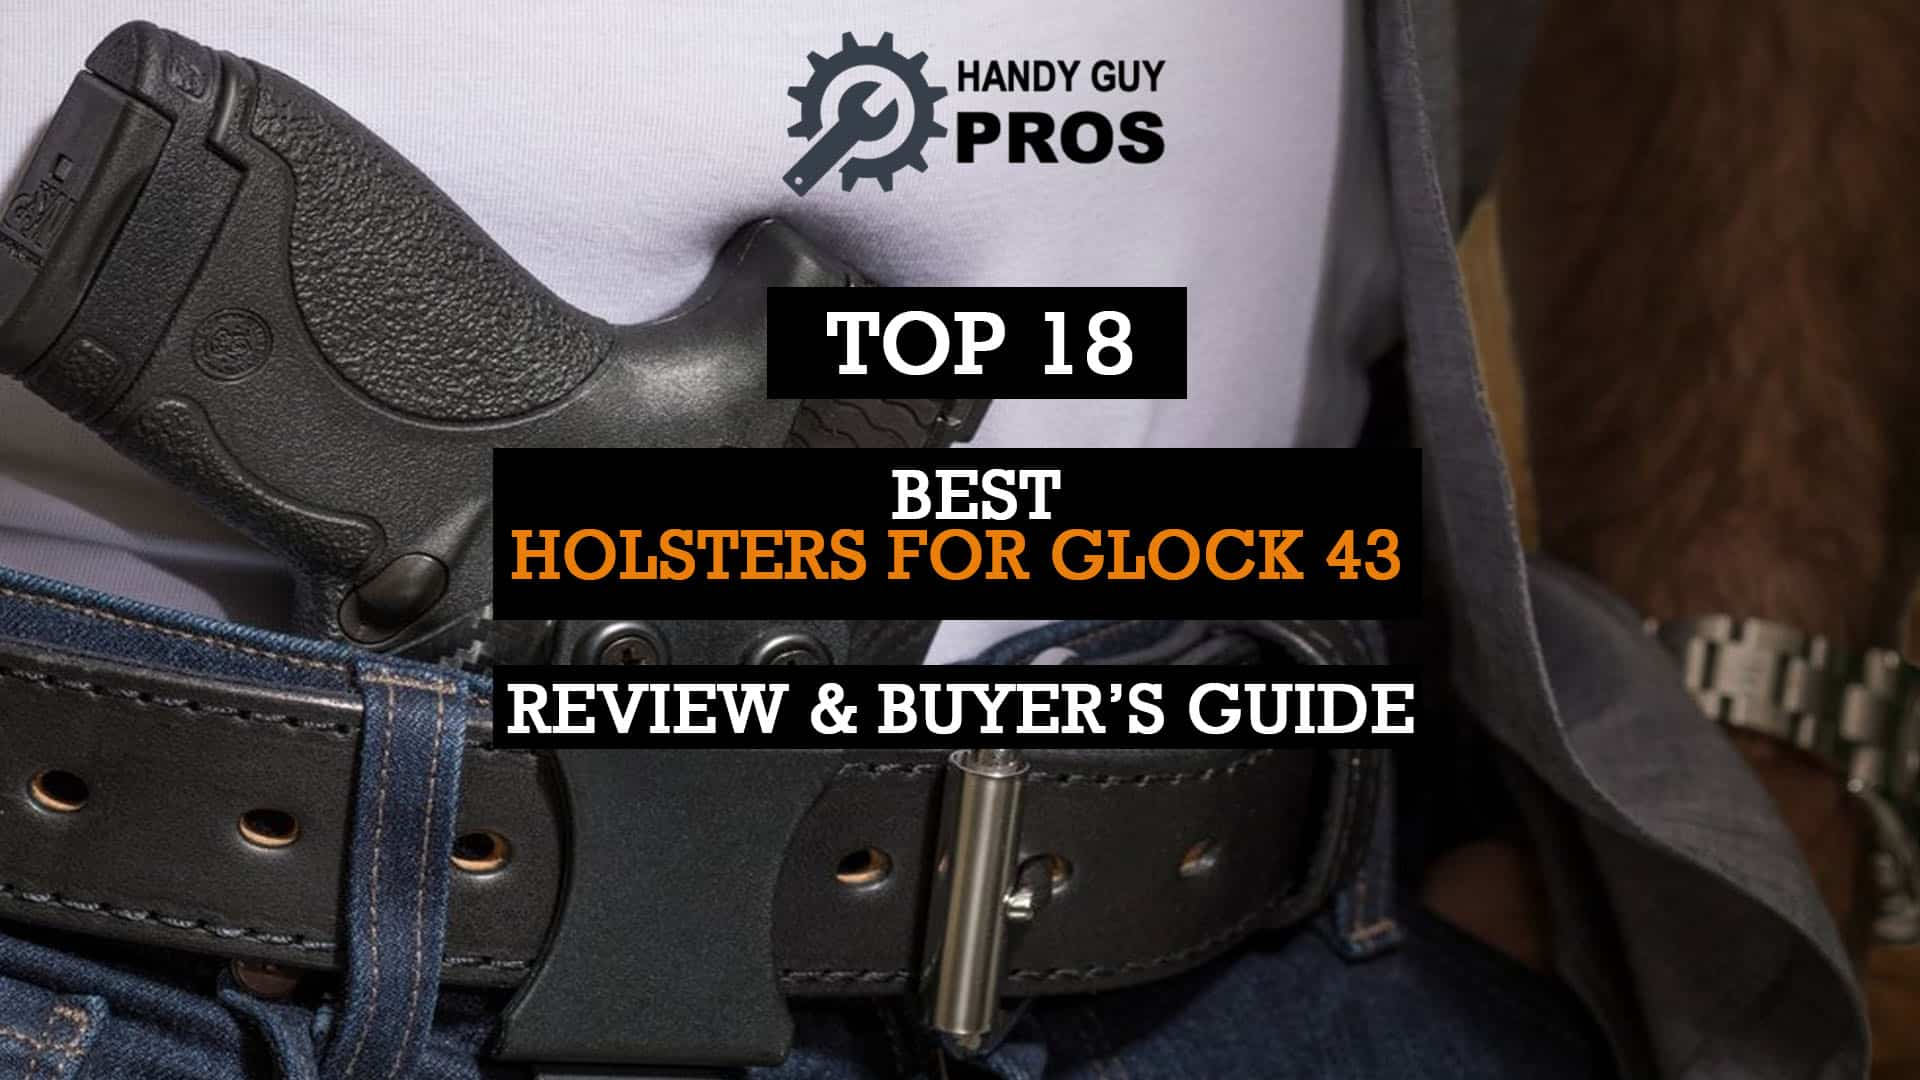 Best Holsters for Glock 43